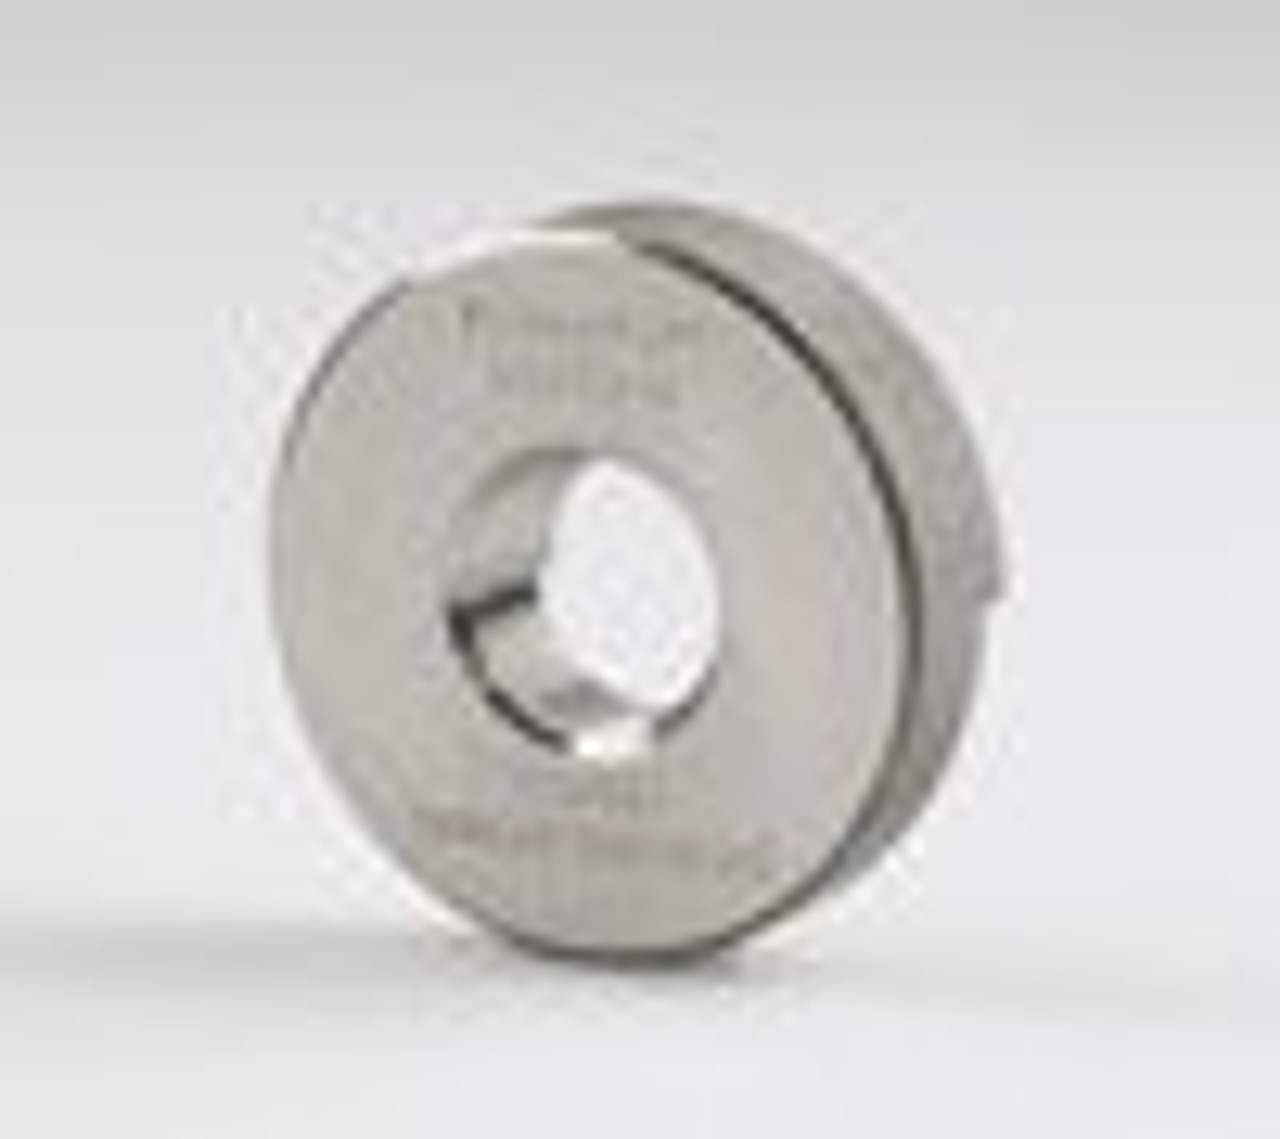 "BSPT 1-1/4"" - 11 Taper Thread Ring Gauge - (BSPT1-1/4RG)"